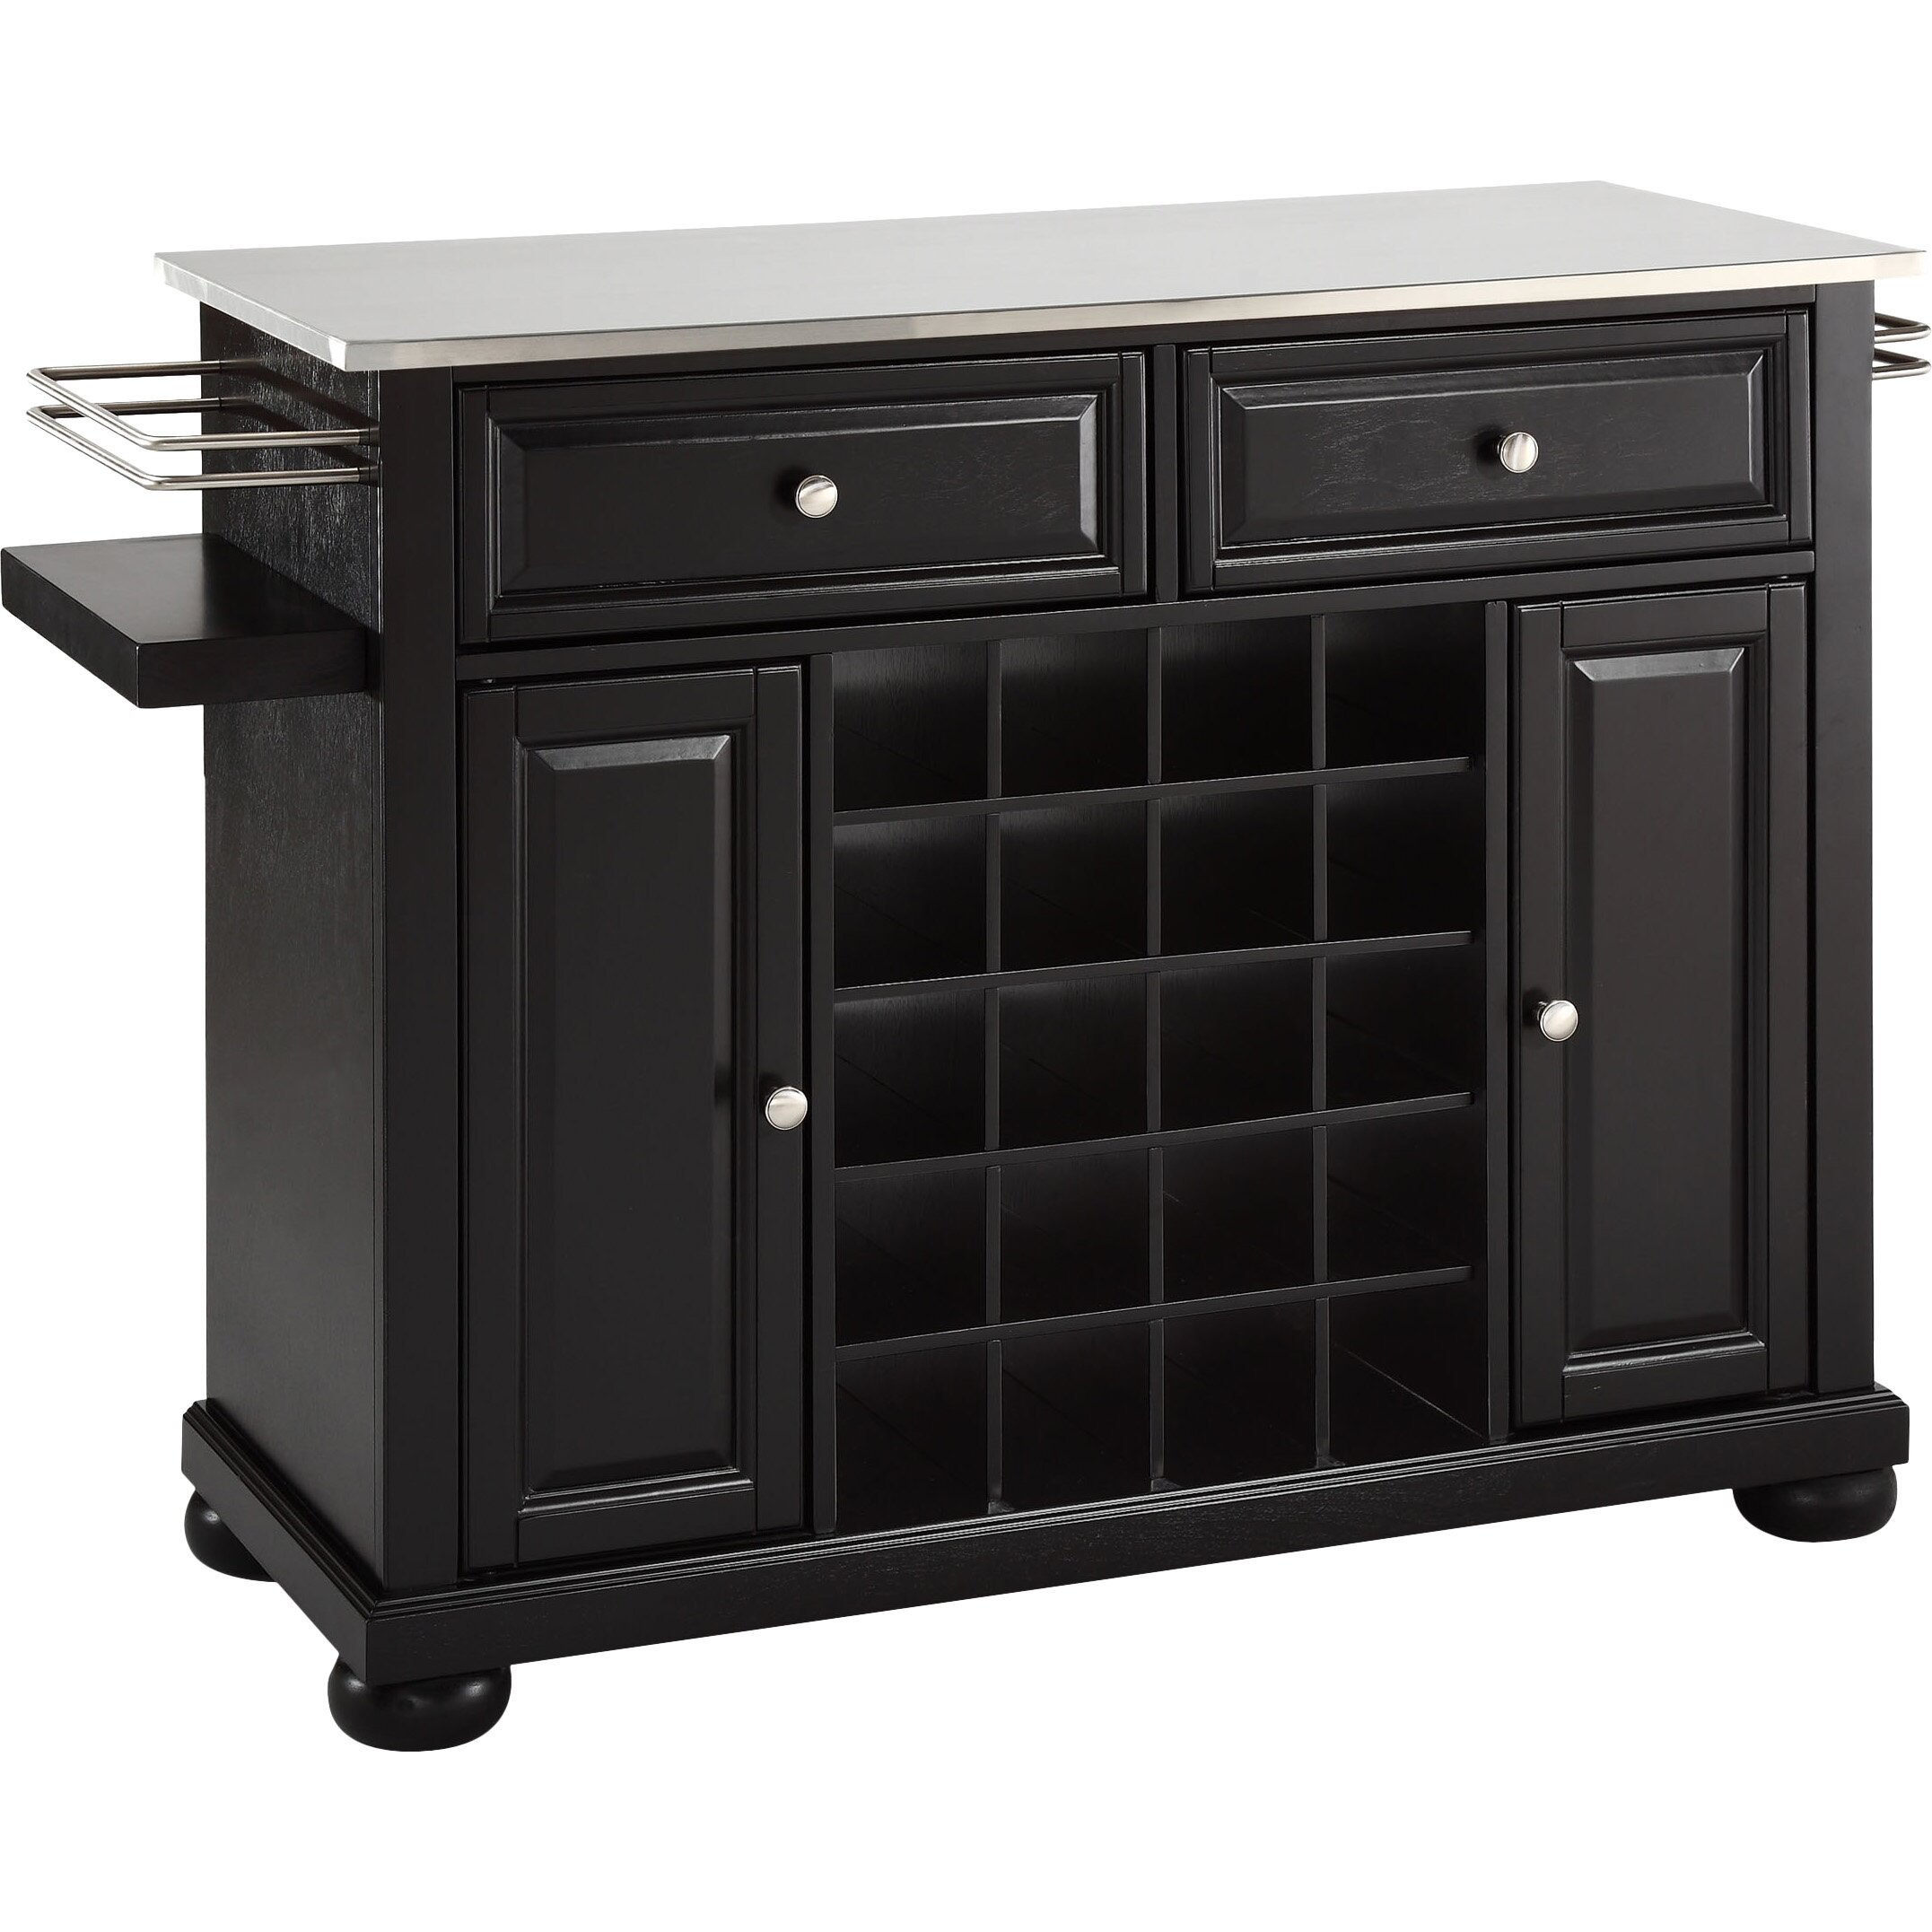 kitchen island stainless top crosley alexandria kitchen island with stainless steel top 5163